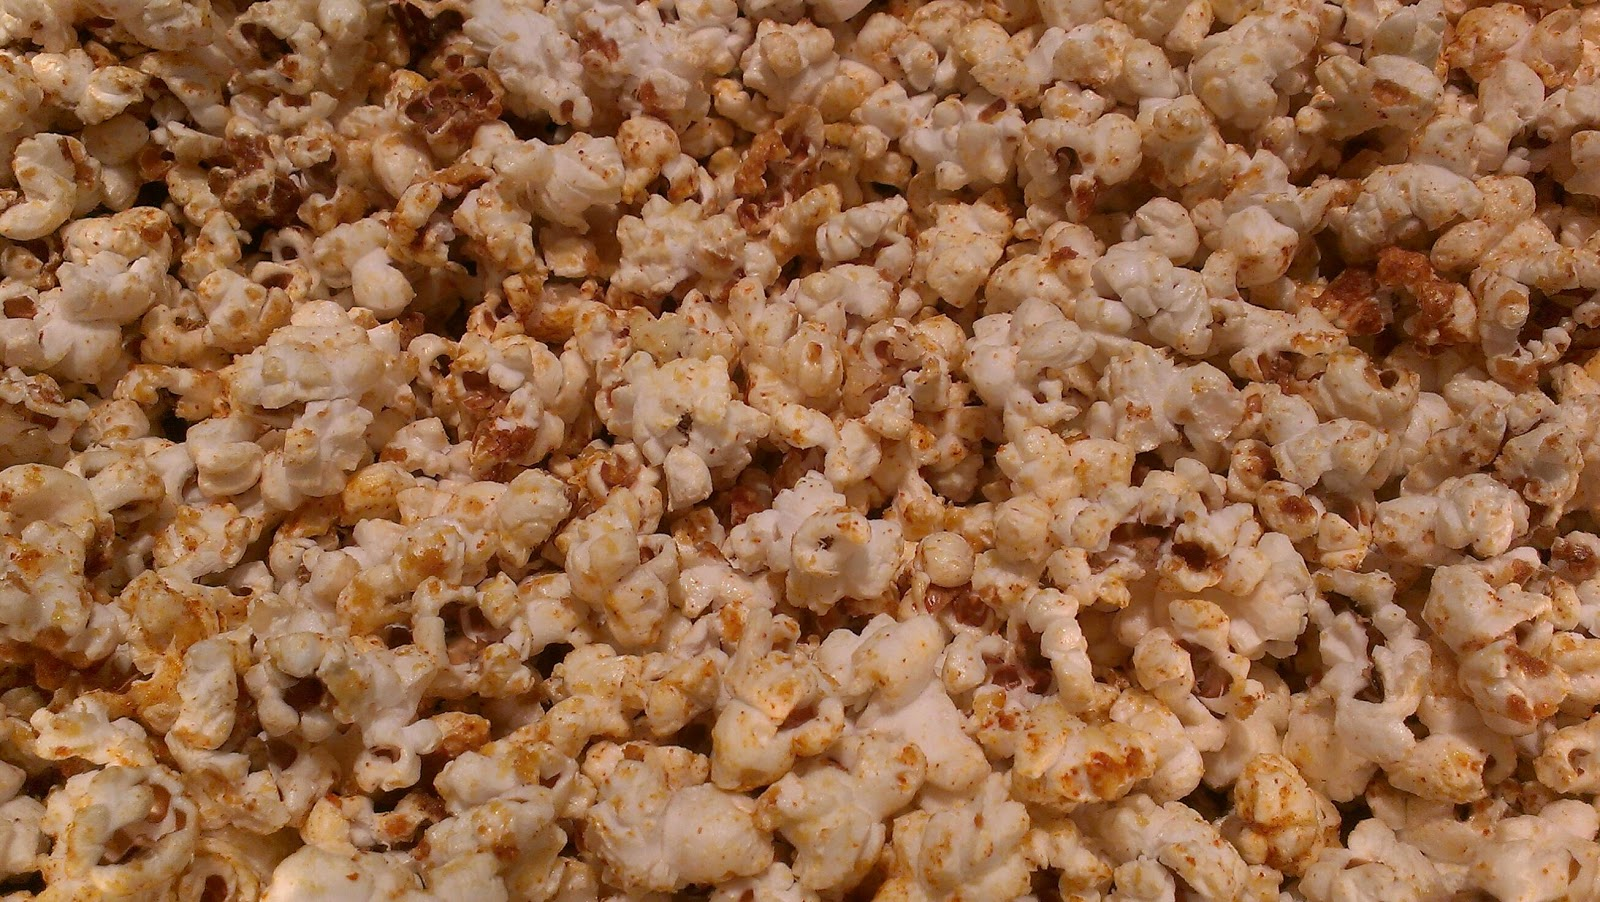 ... Health Inner Wealth: Chili Lime Popcorn - Vegan and Glutenfree